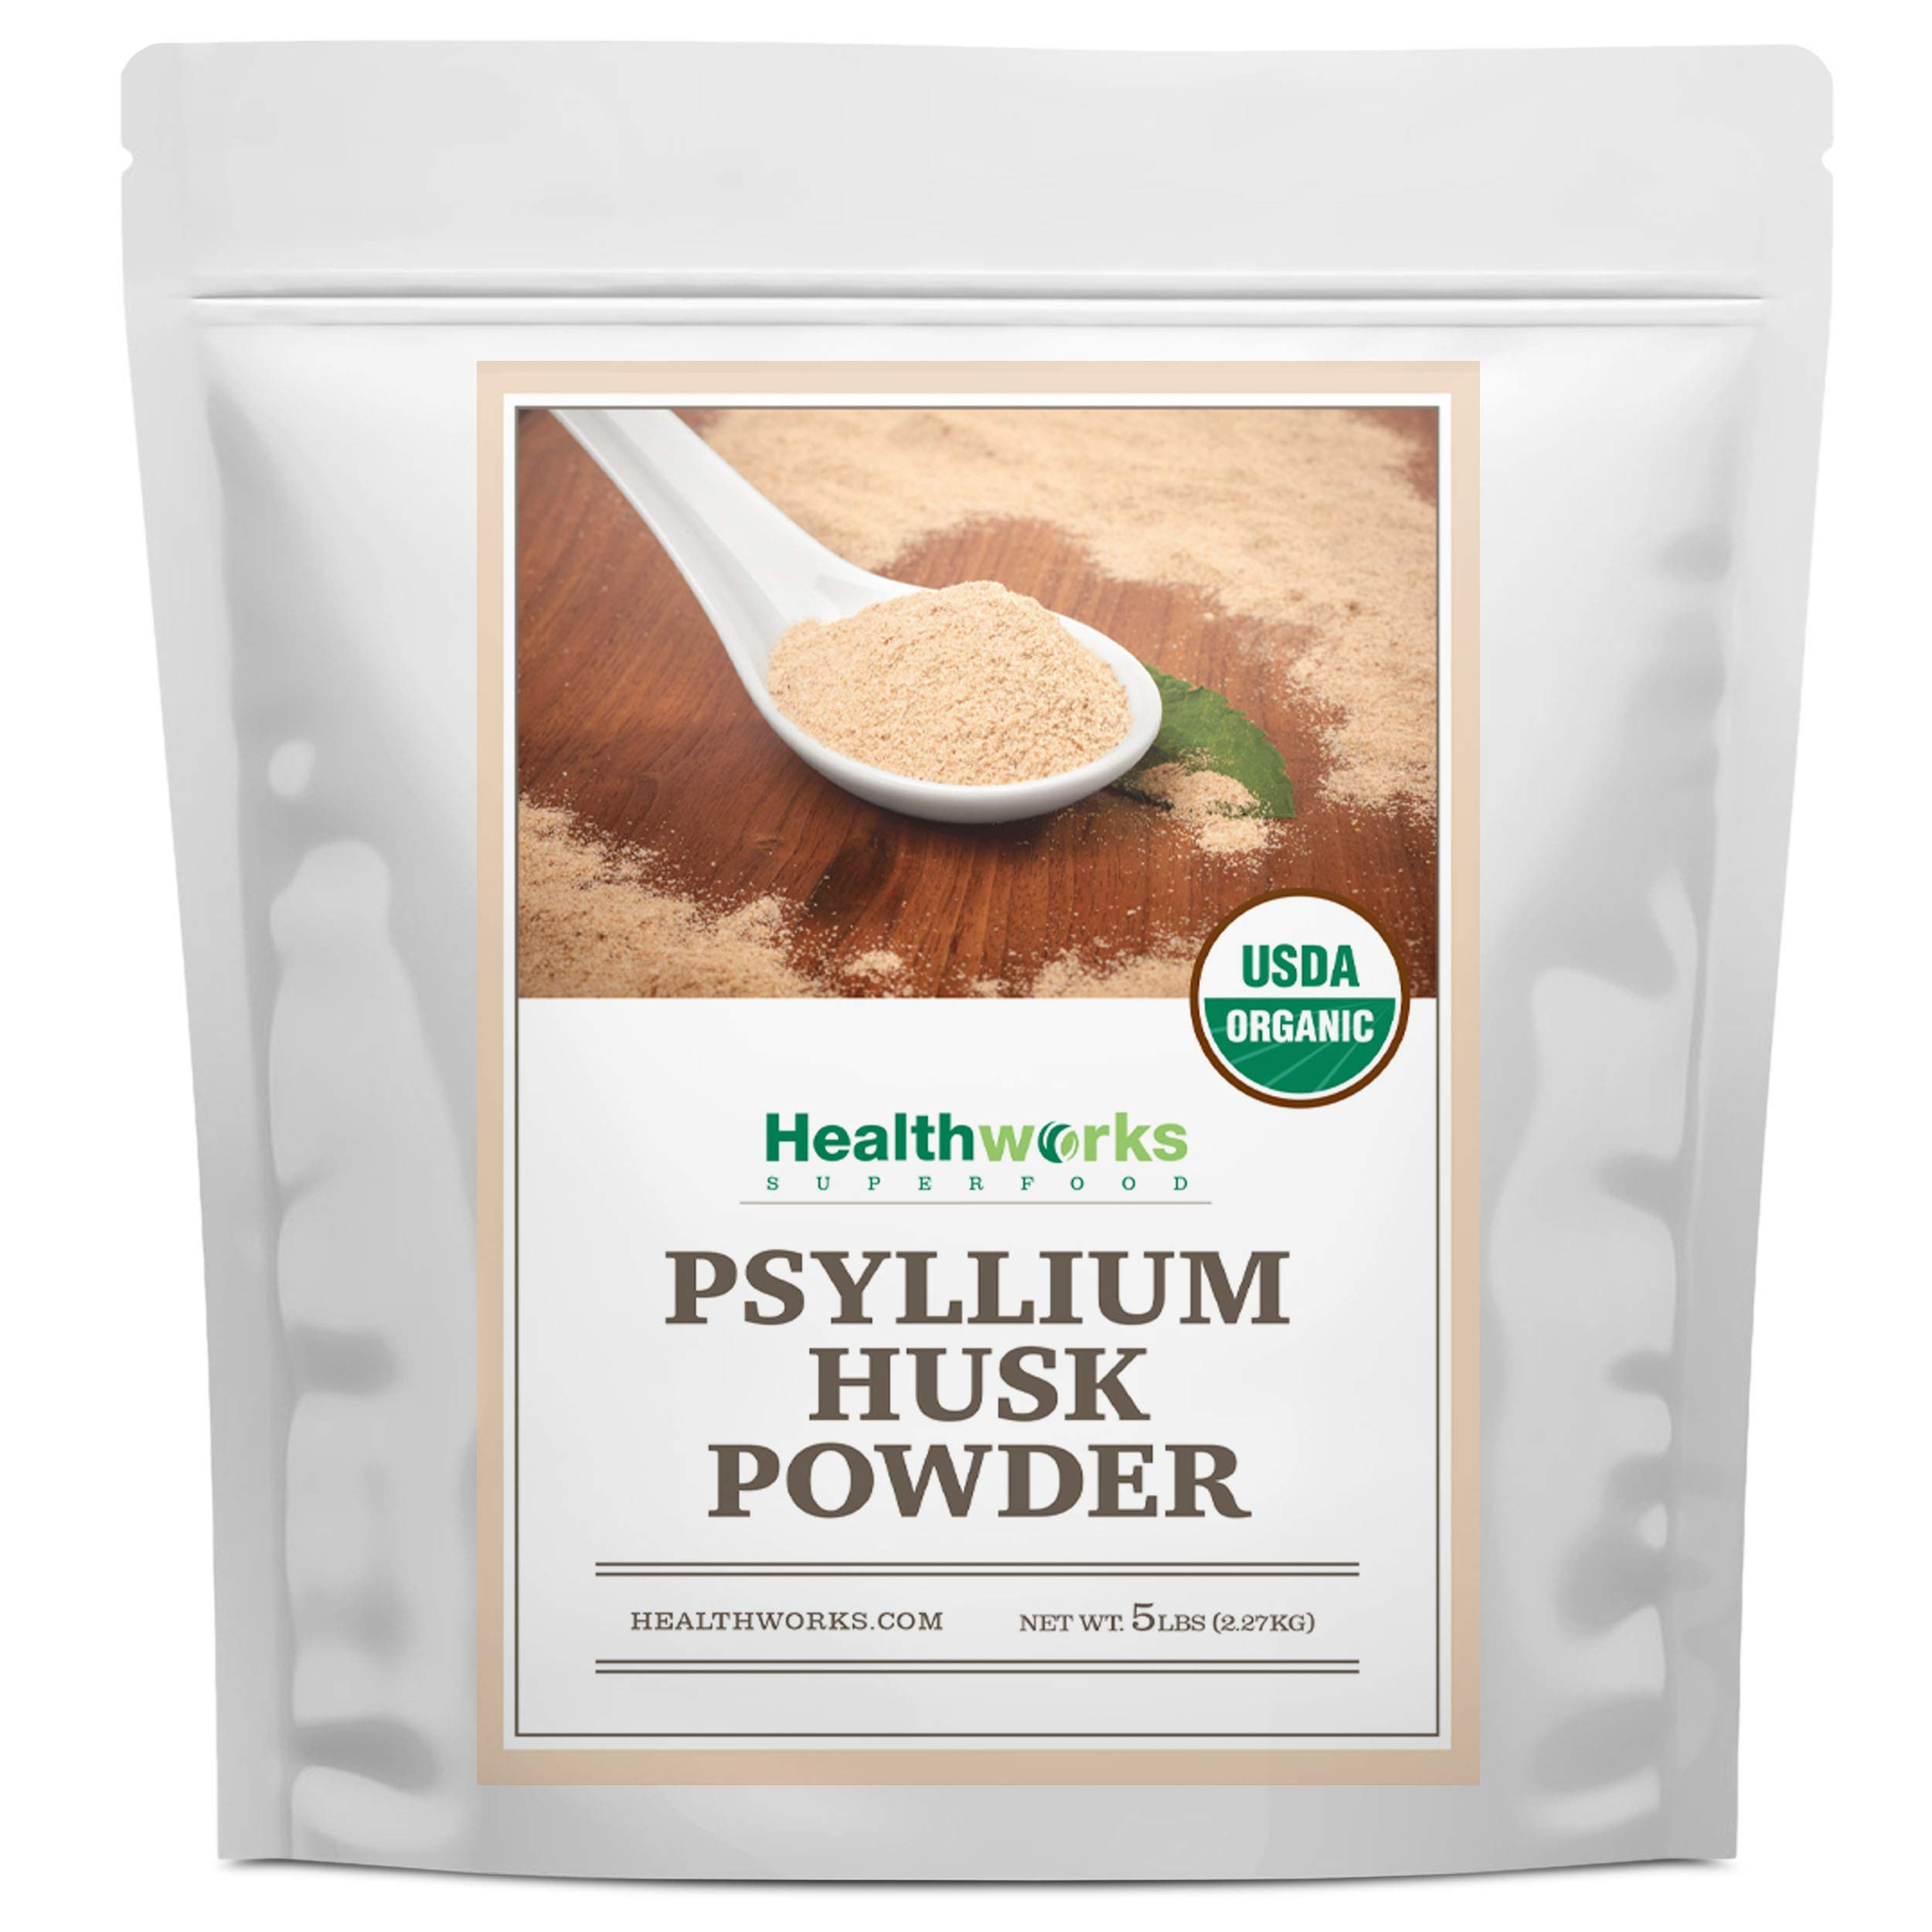 Healthworks Psyllium Husk Powder (80 Ounces / 5 Pounds) | Raw | Certified Organic | Finely Ground Powder from India | Keto, Vegan & Non-GMO | Fiber Support by Healthworks